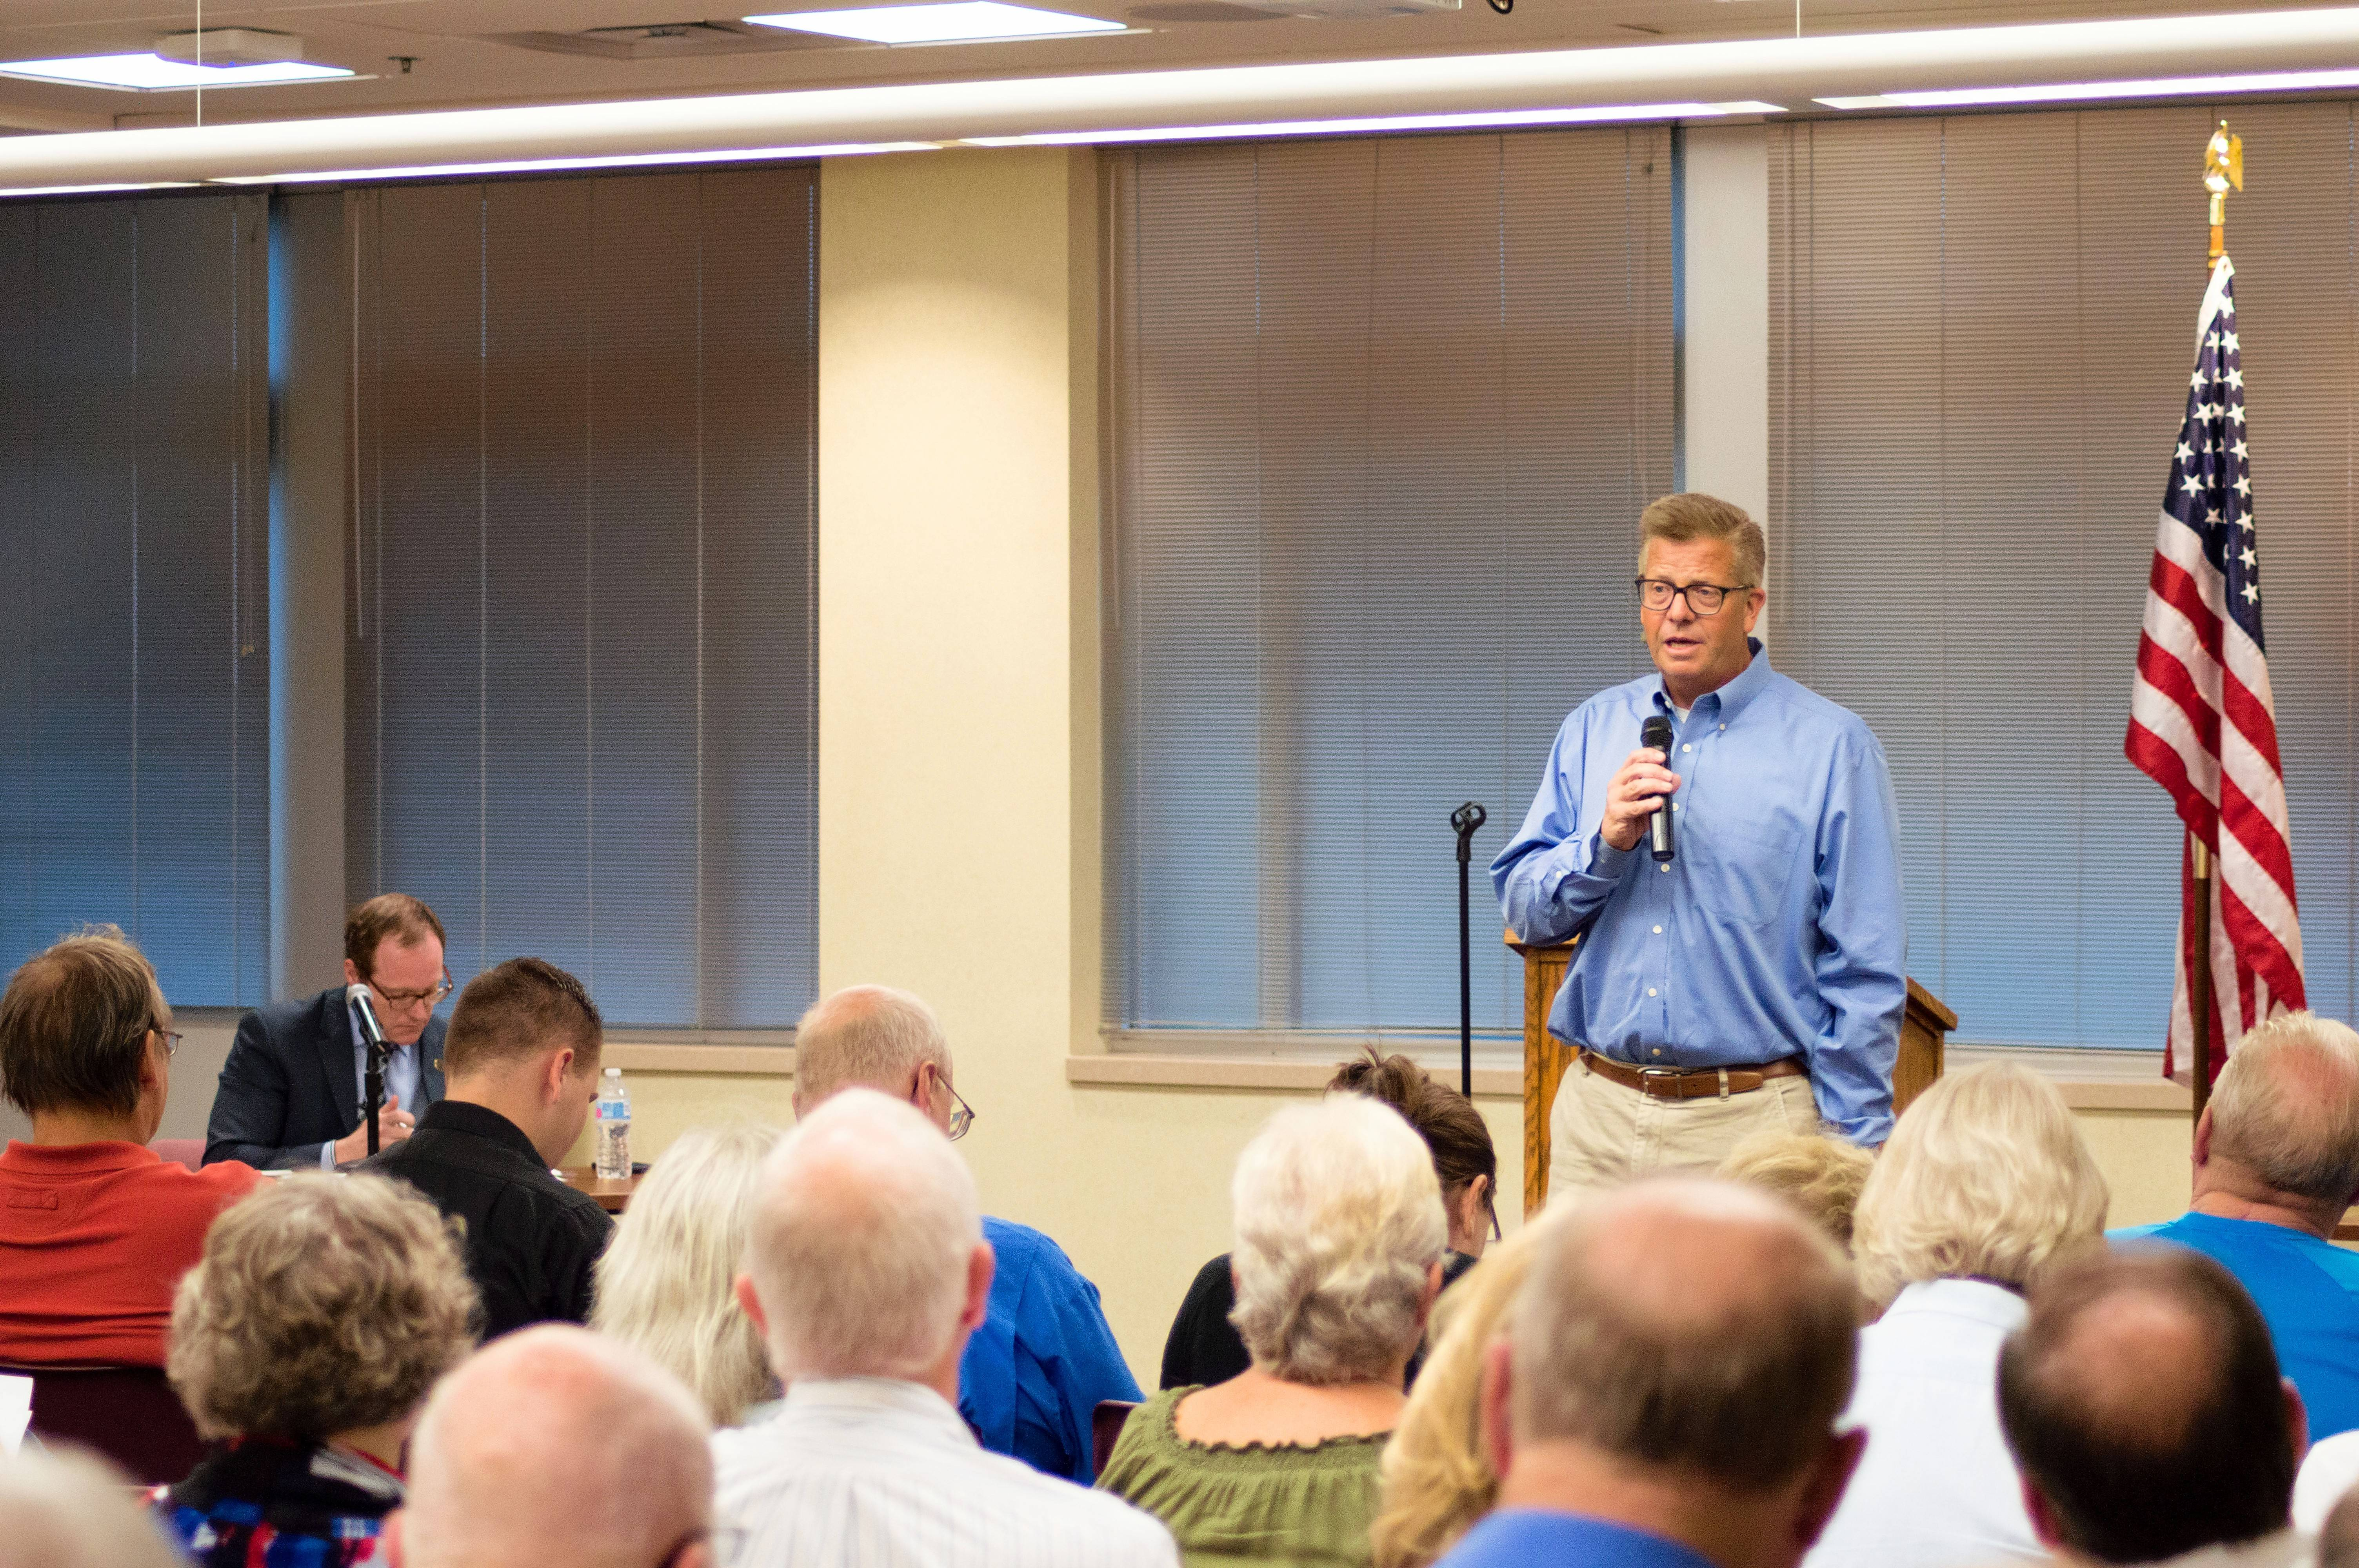 "Congressman Randy Hultgren responded to fervent booing from more than 150 constituents in a forum Monday night at the McHenry County Administrative Building, persisting in his support of the federal tax overhaul. ""I see so many people who are working. Anything we can do to grow this economy is really important,"" he said."